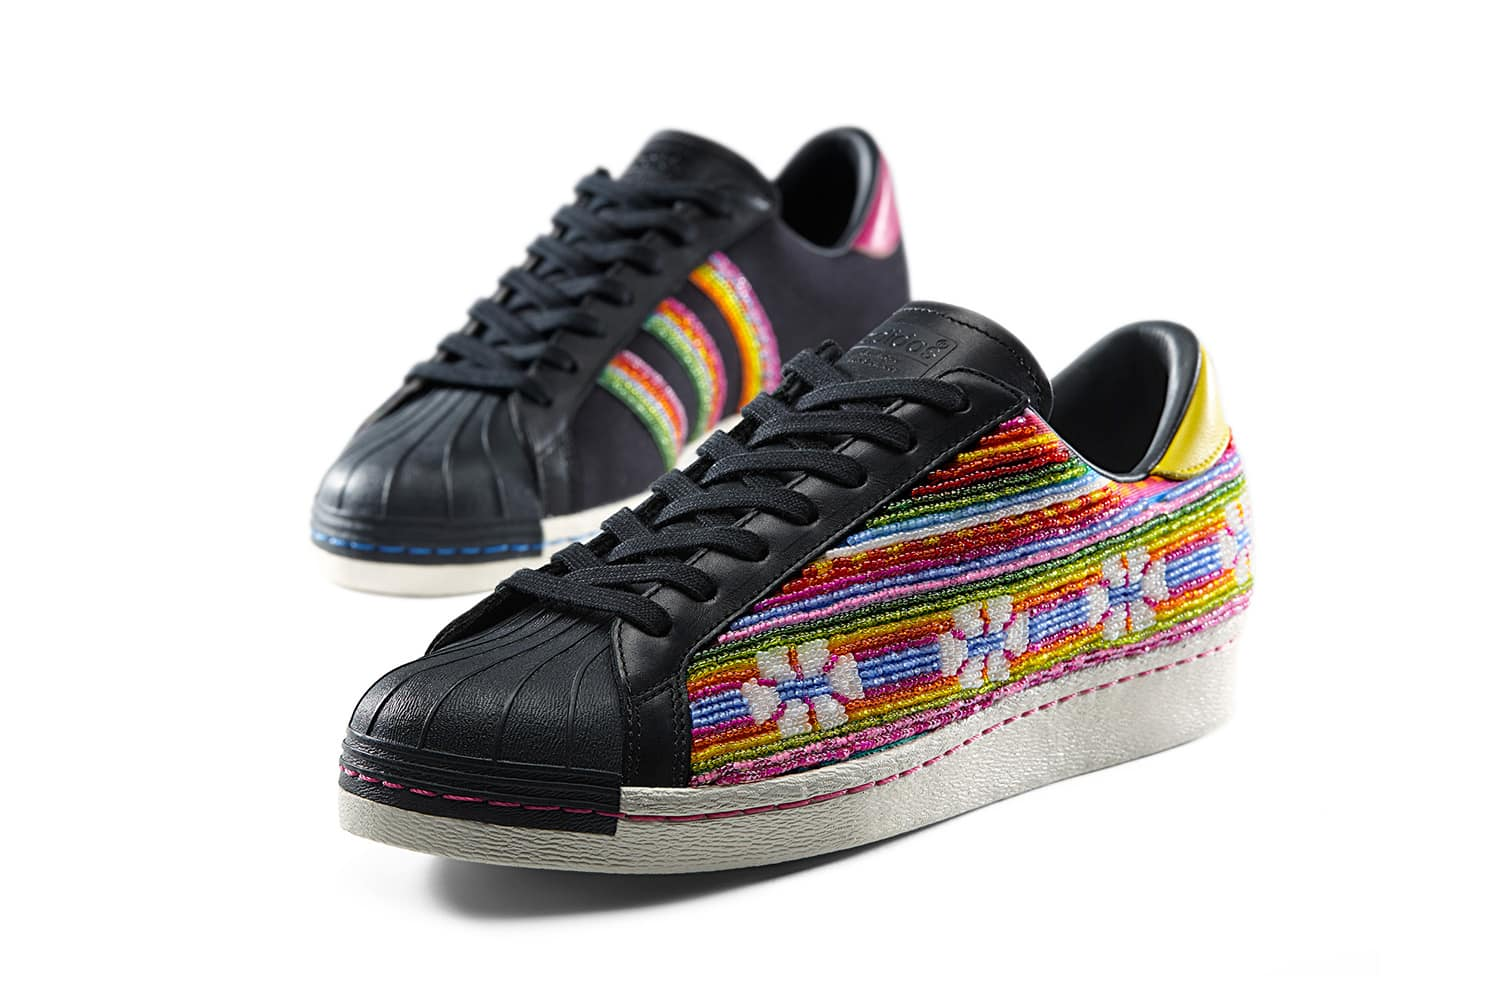 adidas-pharrell-williams-superstar-80s-01